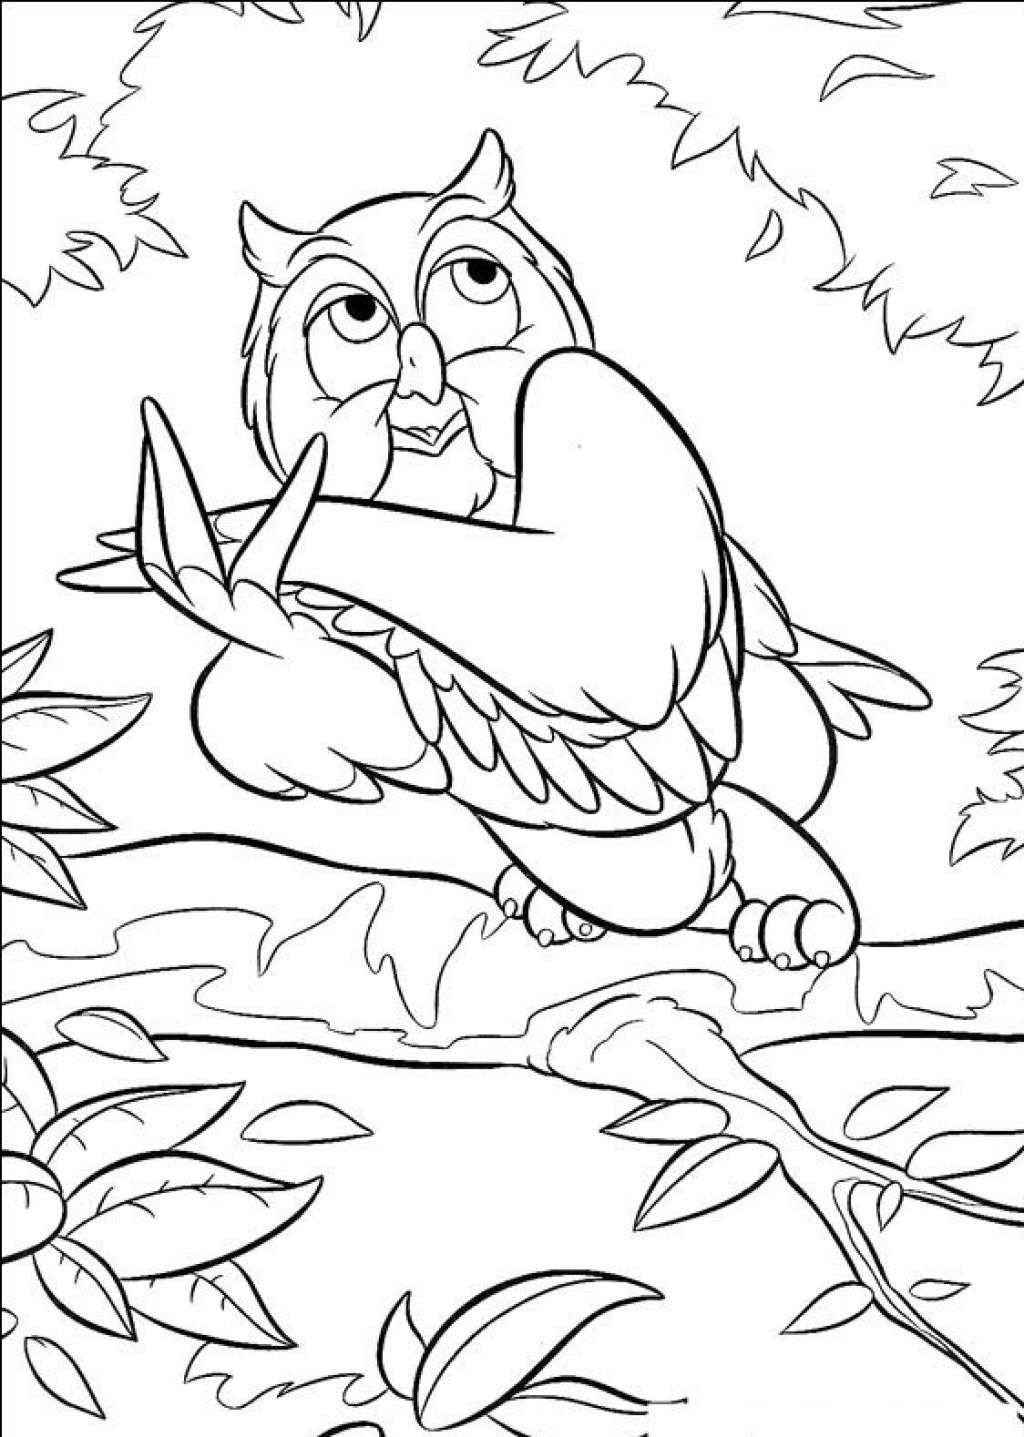 printable coloring pages of owls - Cute Owl Printable Coloring Pages